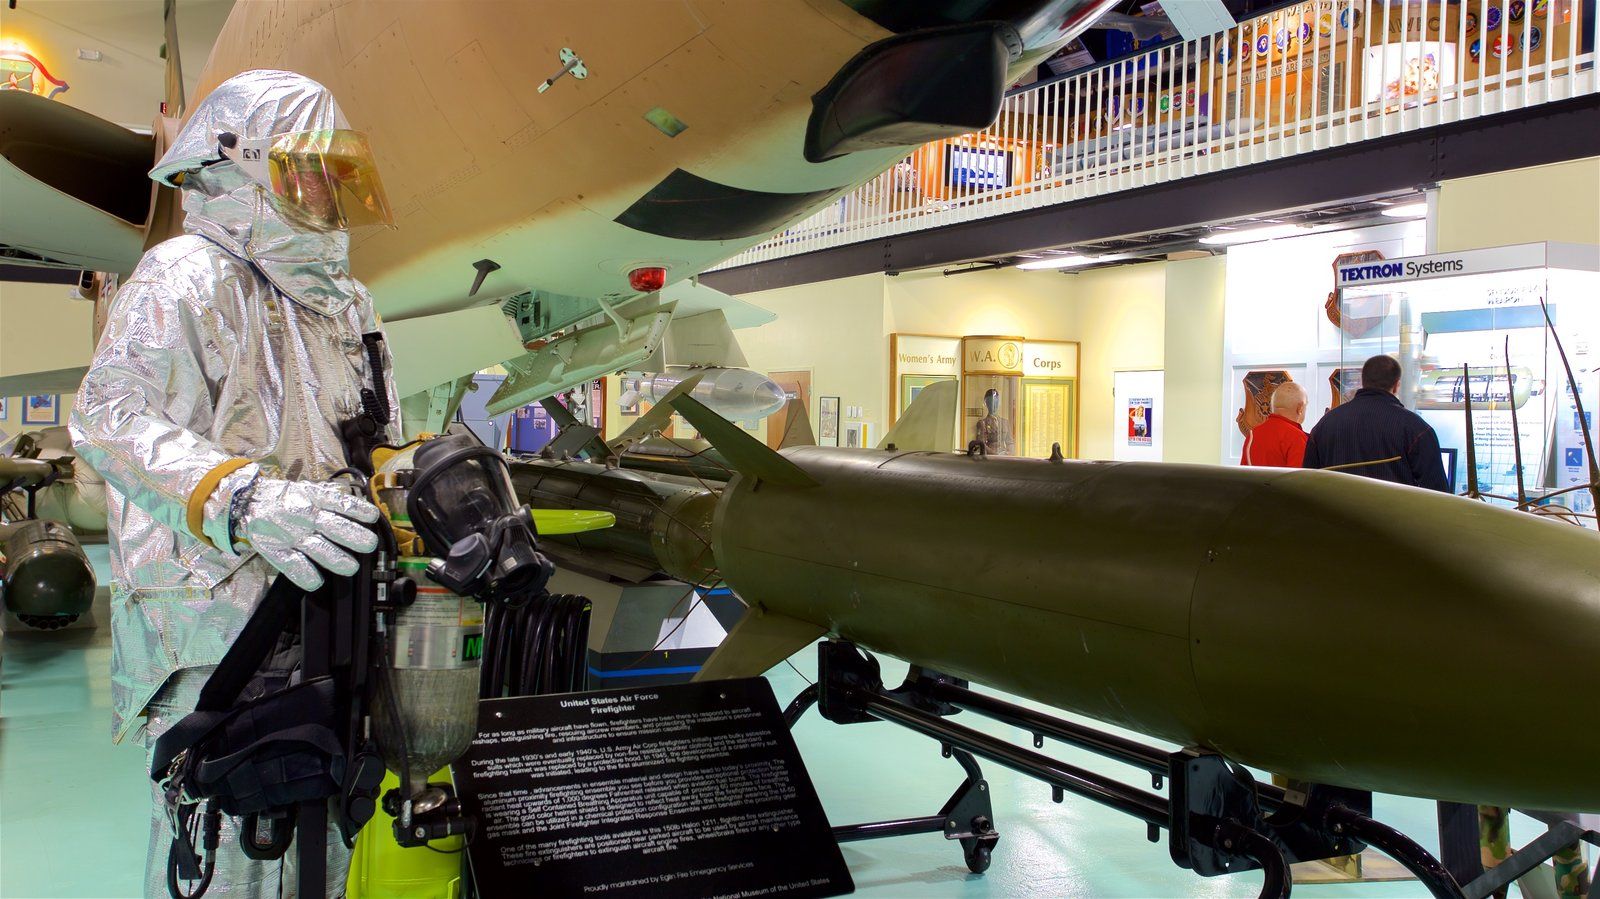 Air Force Armament Museum which includes interior views